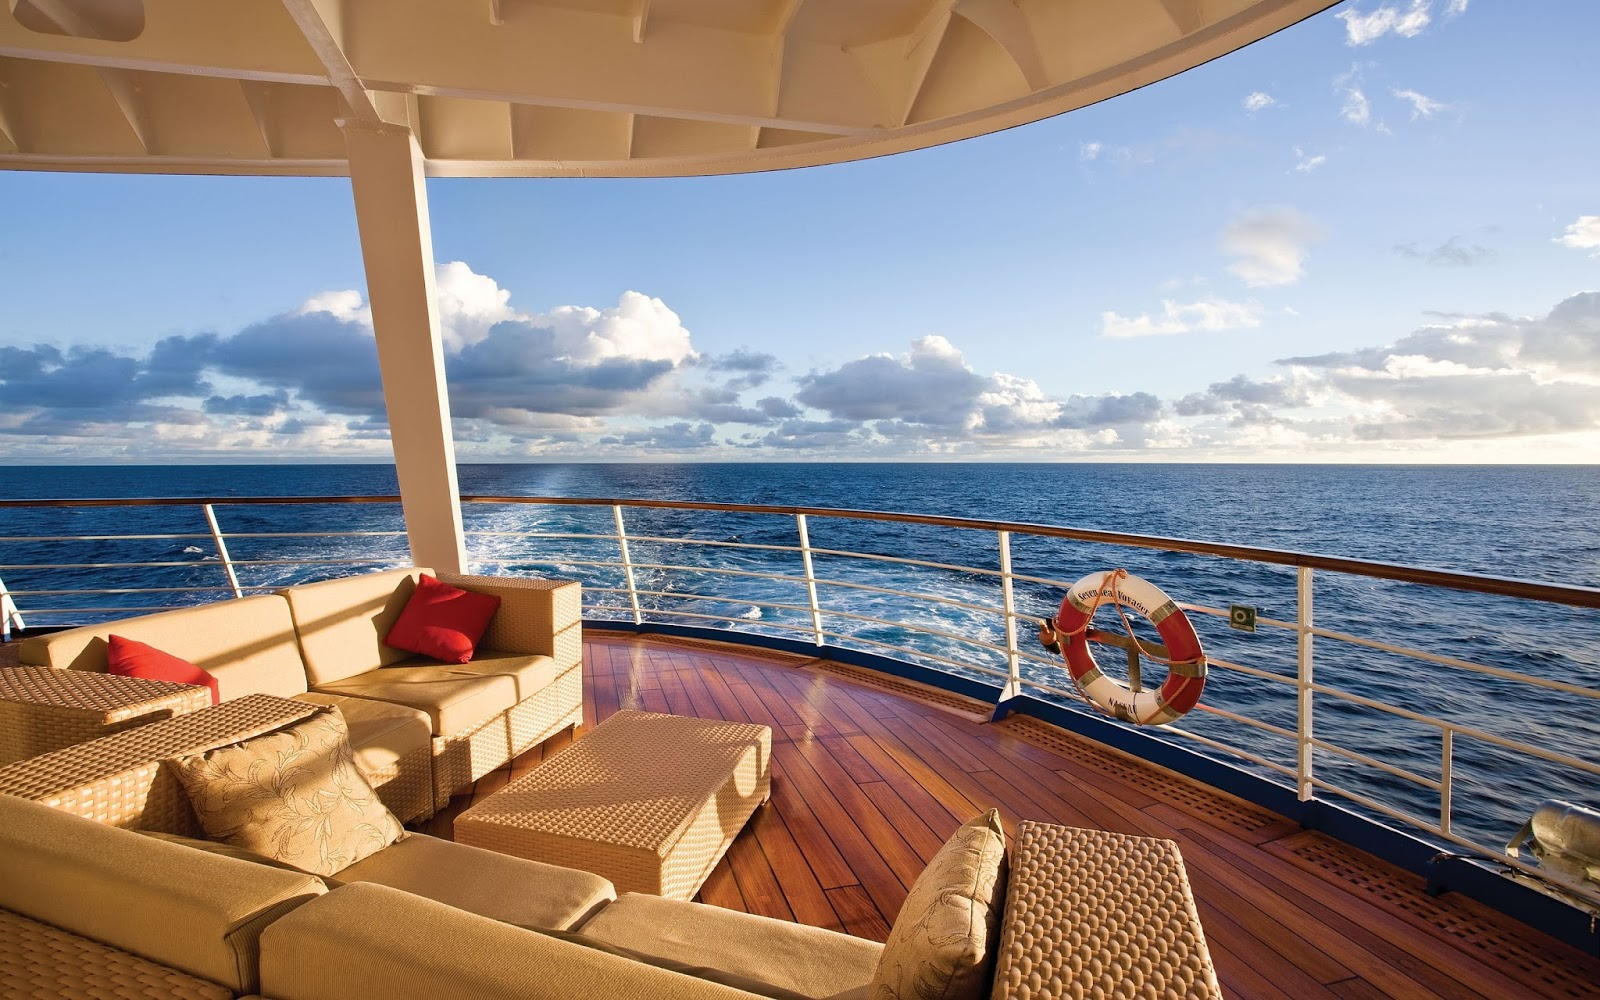 Yacht Pictures, Luxury Private Yachts: Mega Yacht Full HD ...